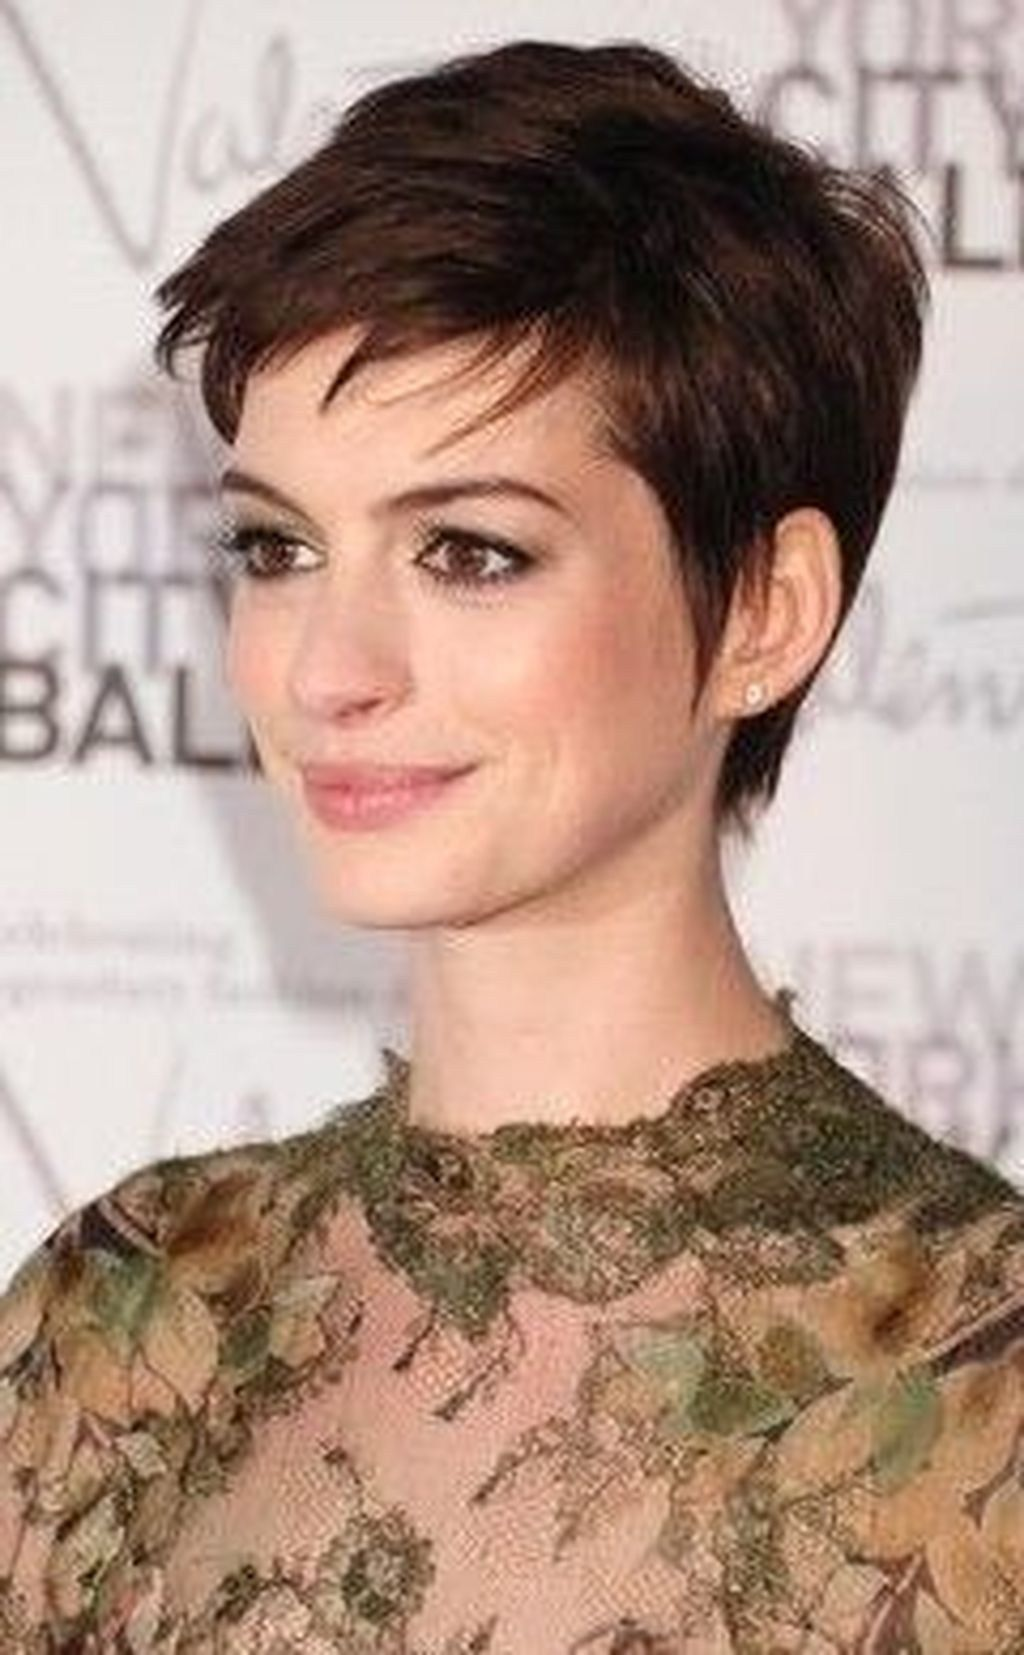 Wonderful Short Haircuts And Hairstyles Ideas For Thick Hair In 2019 42 Thick Hair Styles Short Hair Styles Haircut For Thick Hair